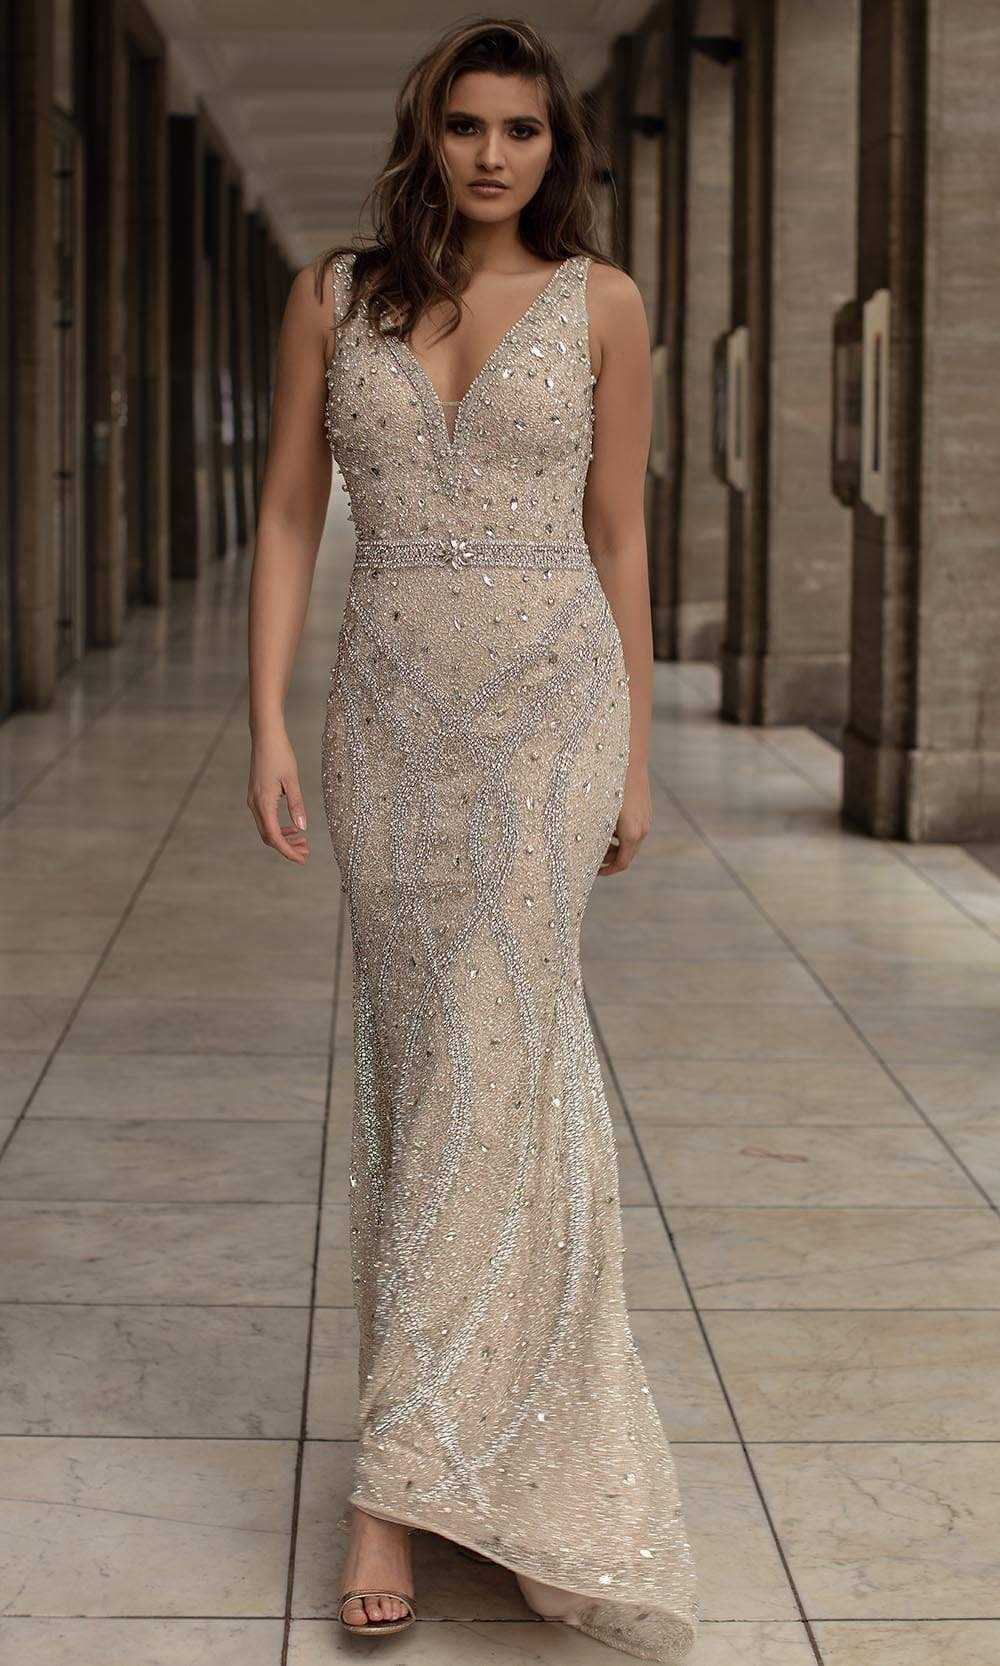 Chic and Holland - HF1521 Sleeveless V-Neck Crystal Embellished Gown from Chic and Holland